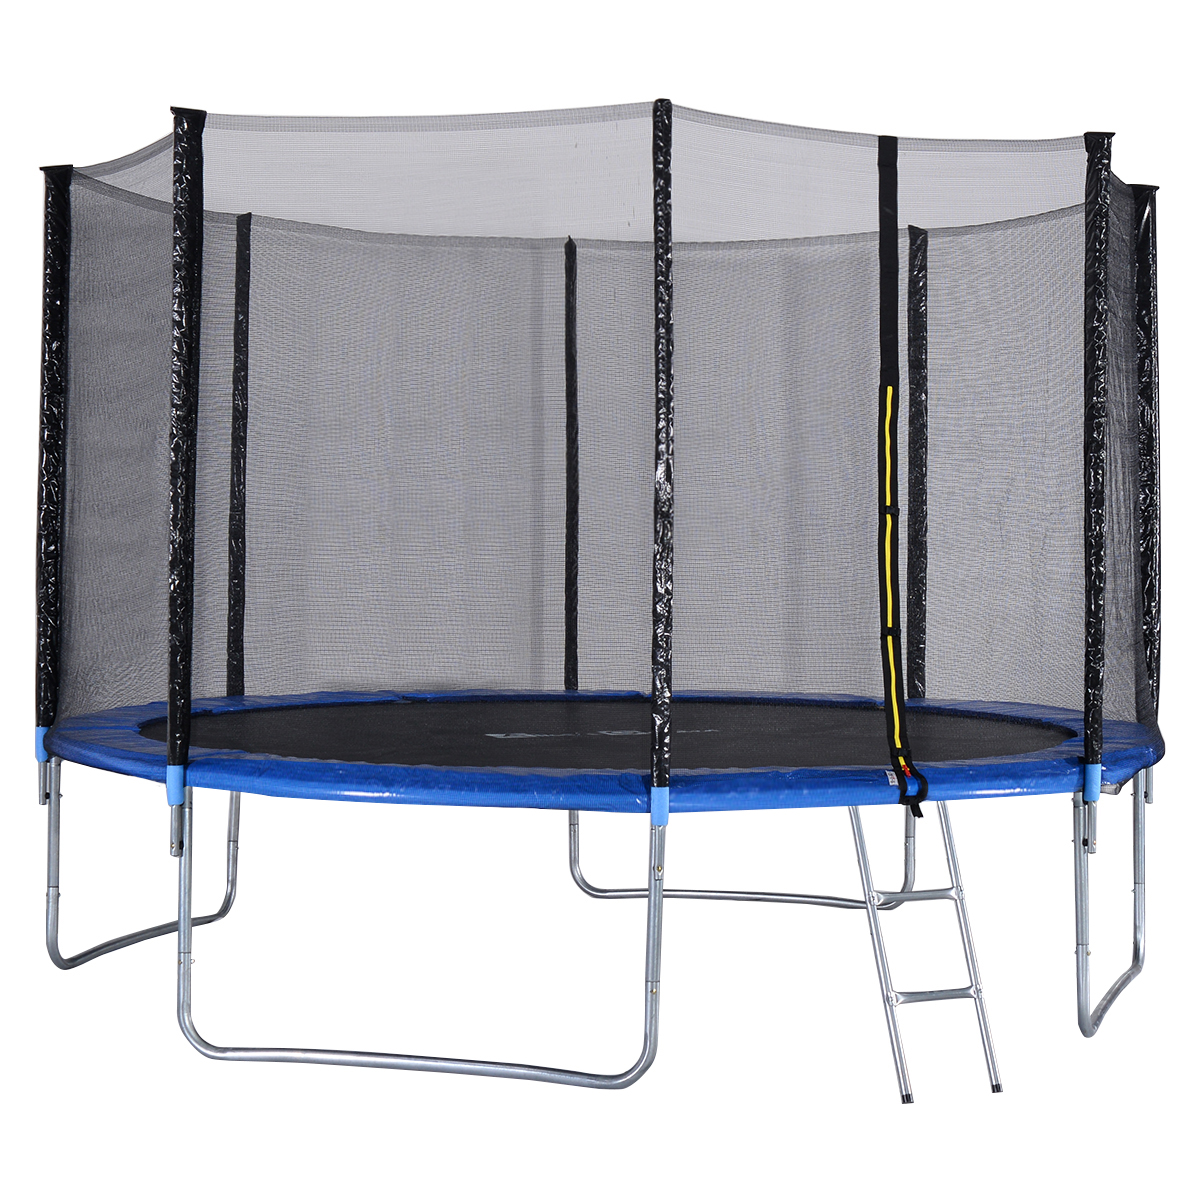 Gymax 12 FT Trampoline Combo Bounce Jump Safety Enclosure Net